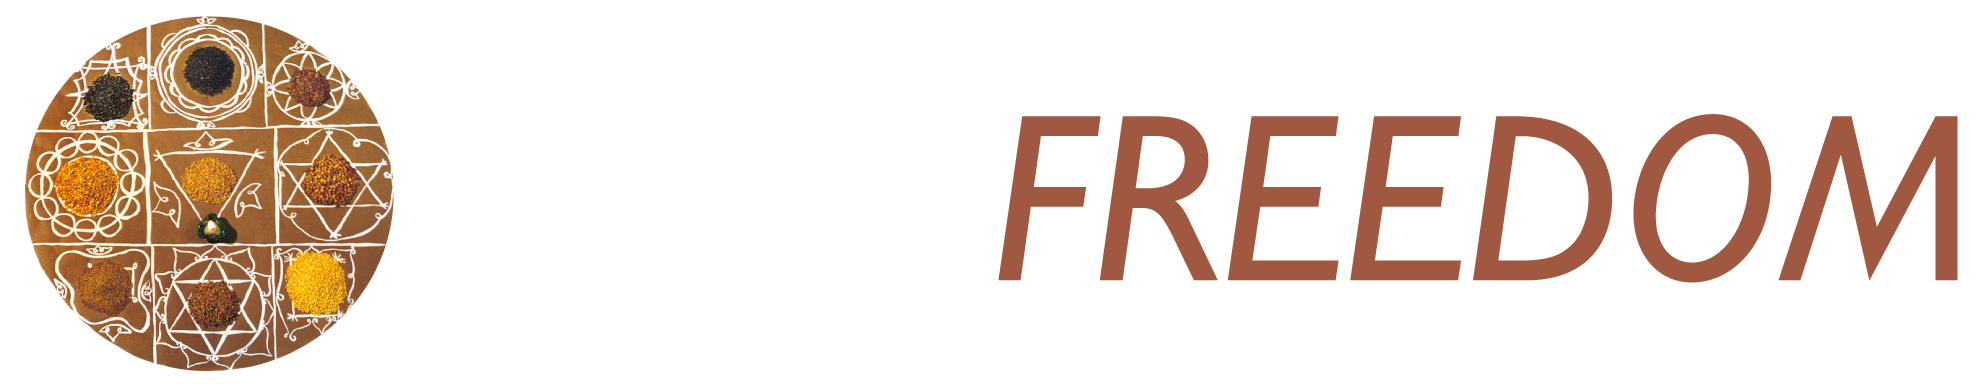 Seedfreedom logotype